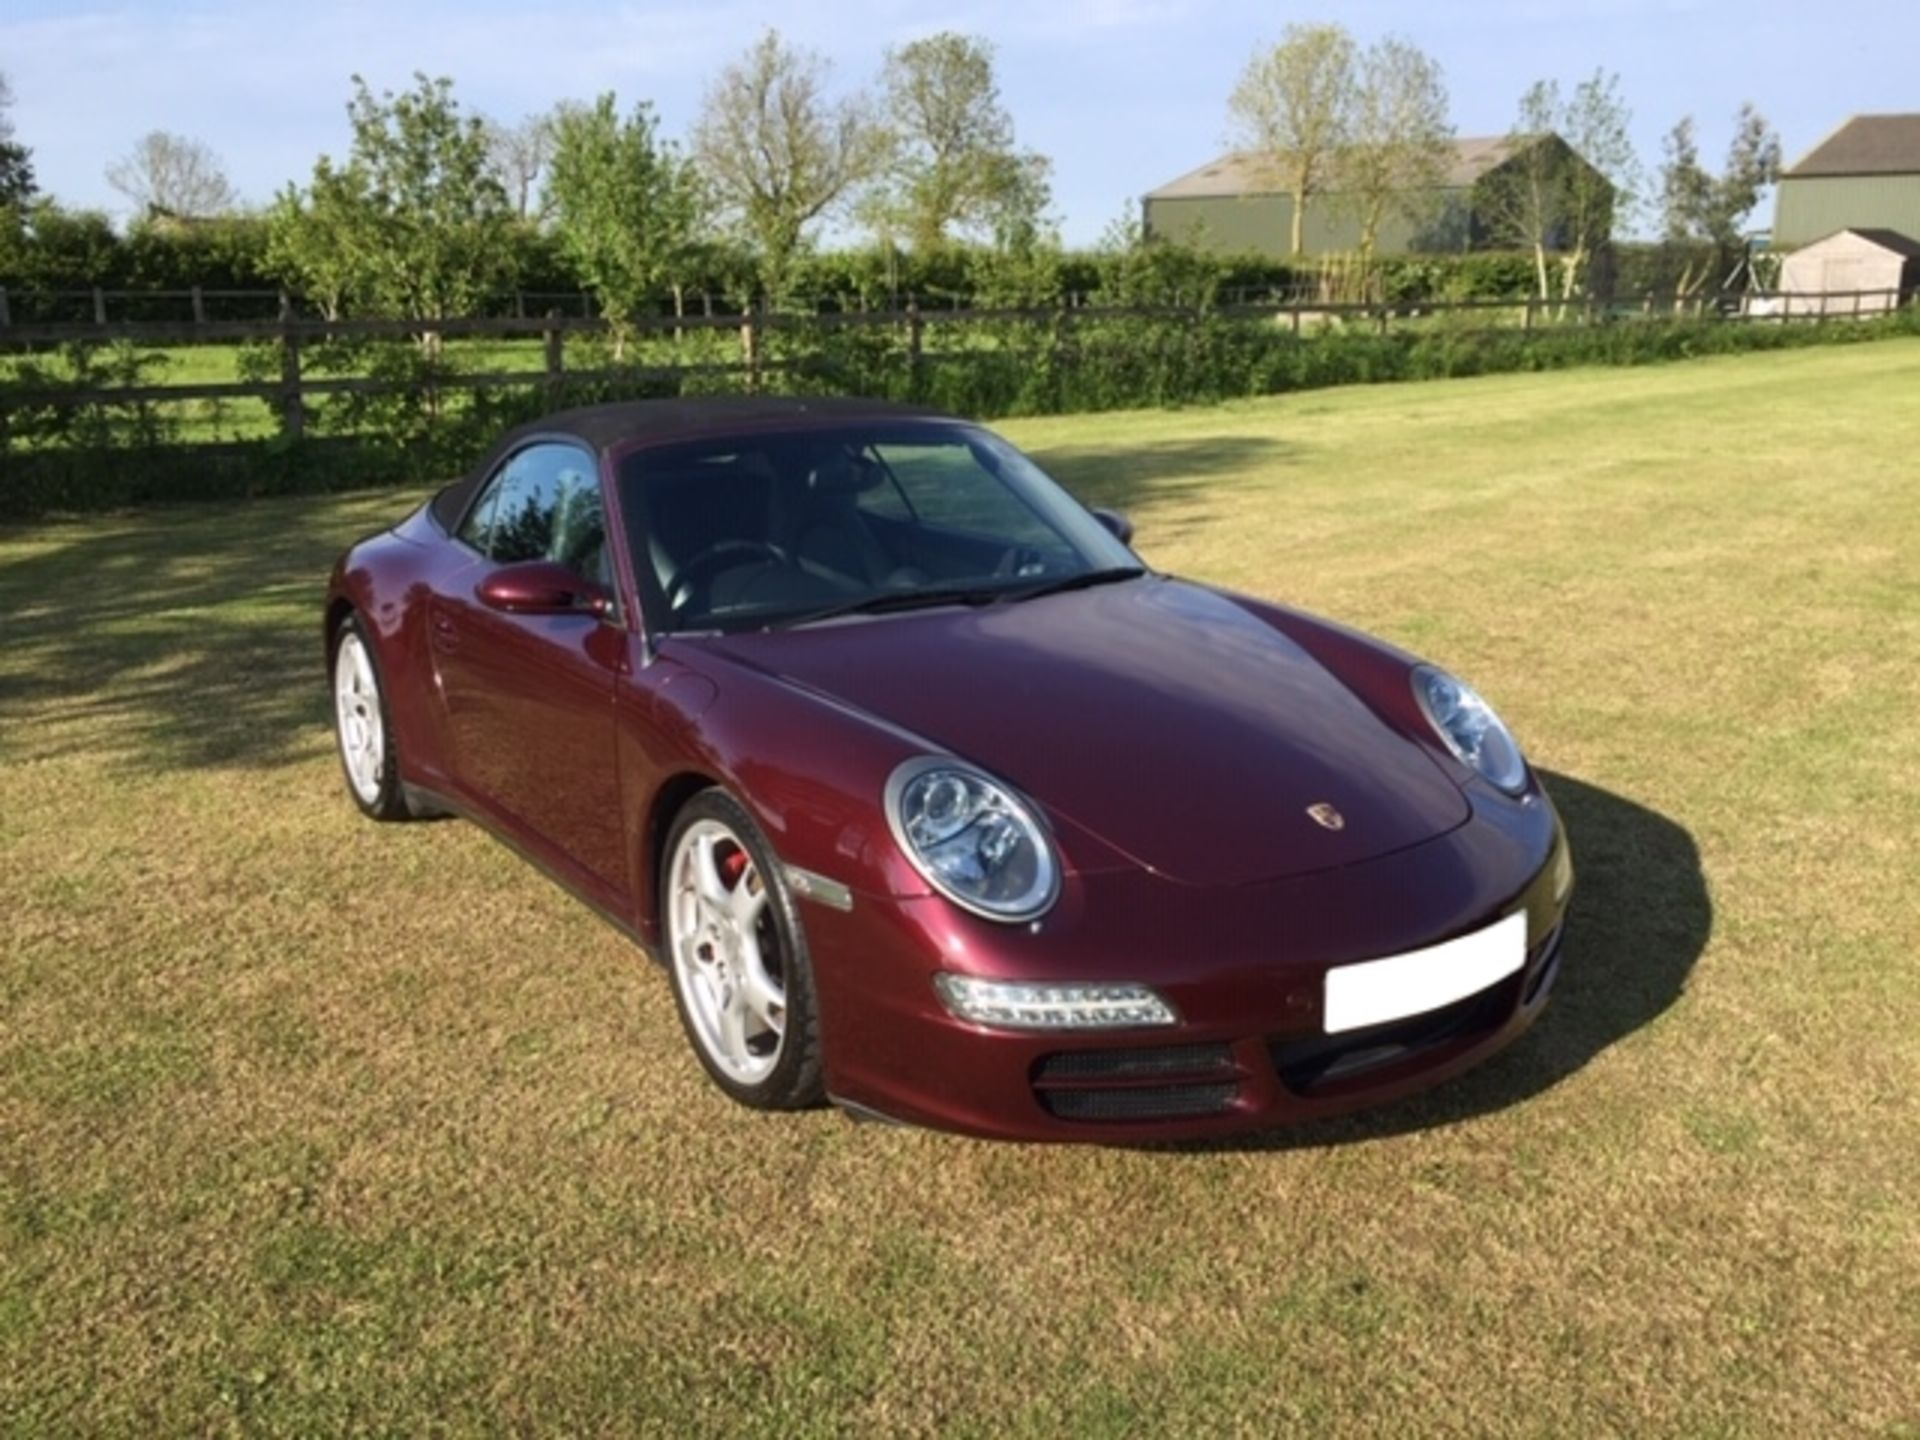 Lot 10 - Porsche 911 Carrera 4S Genuine 22k Miles From New -2006